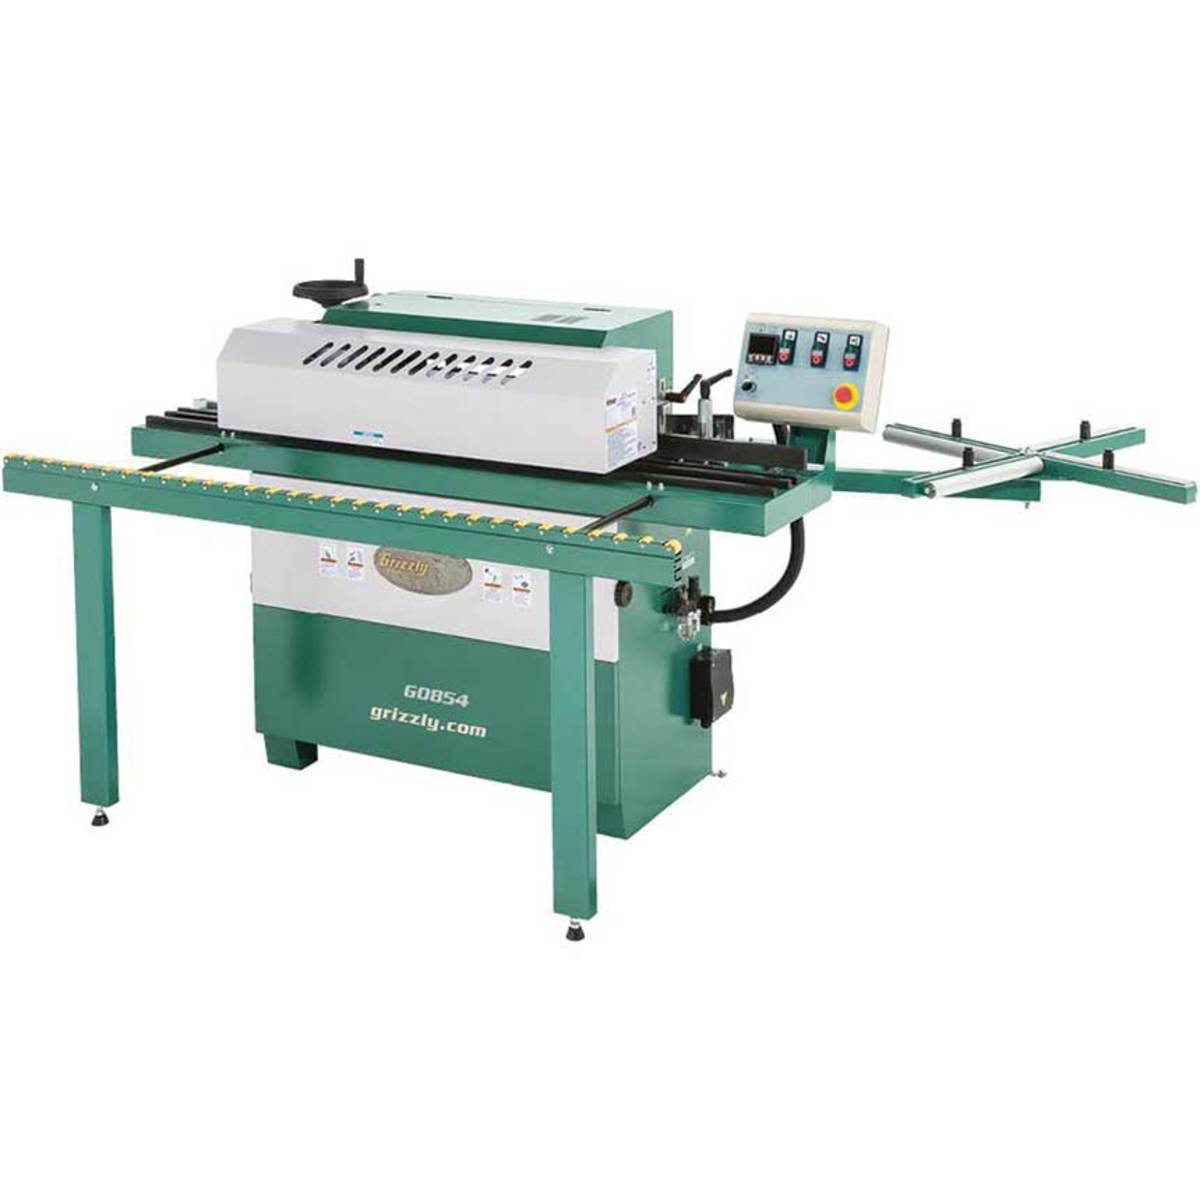 Grizzly's compact automatic edgebander, model G0854.